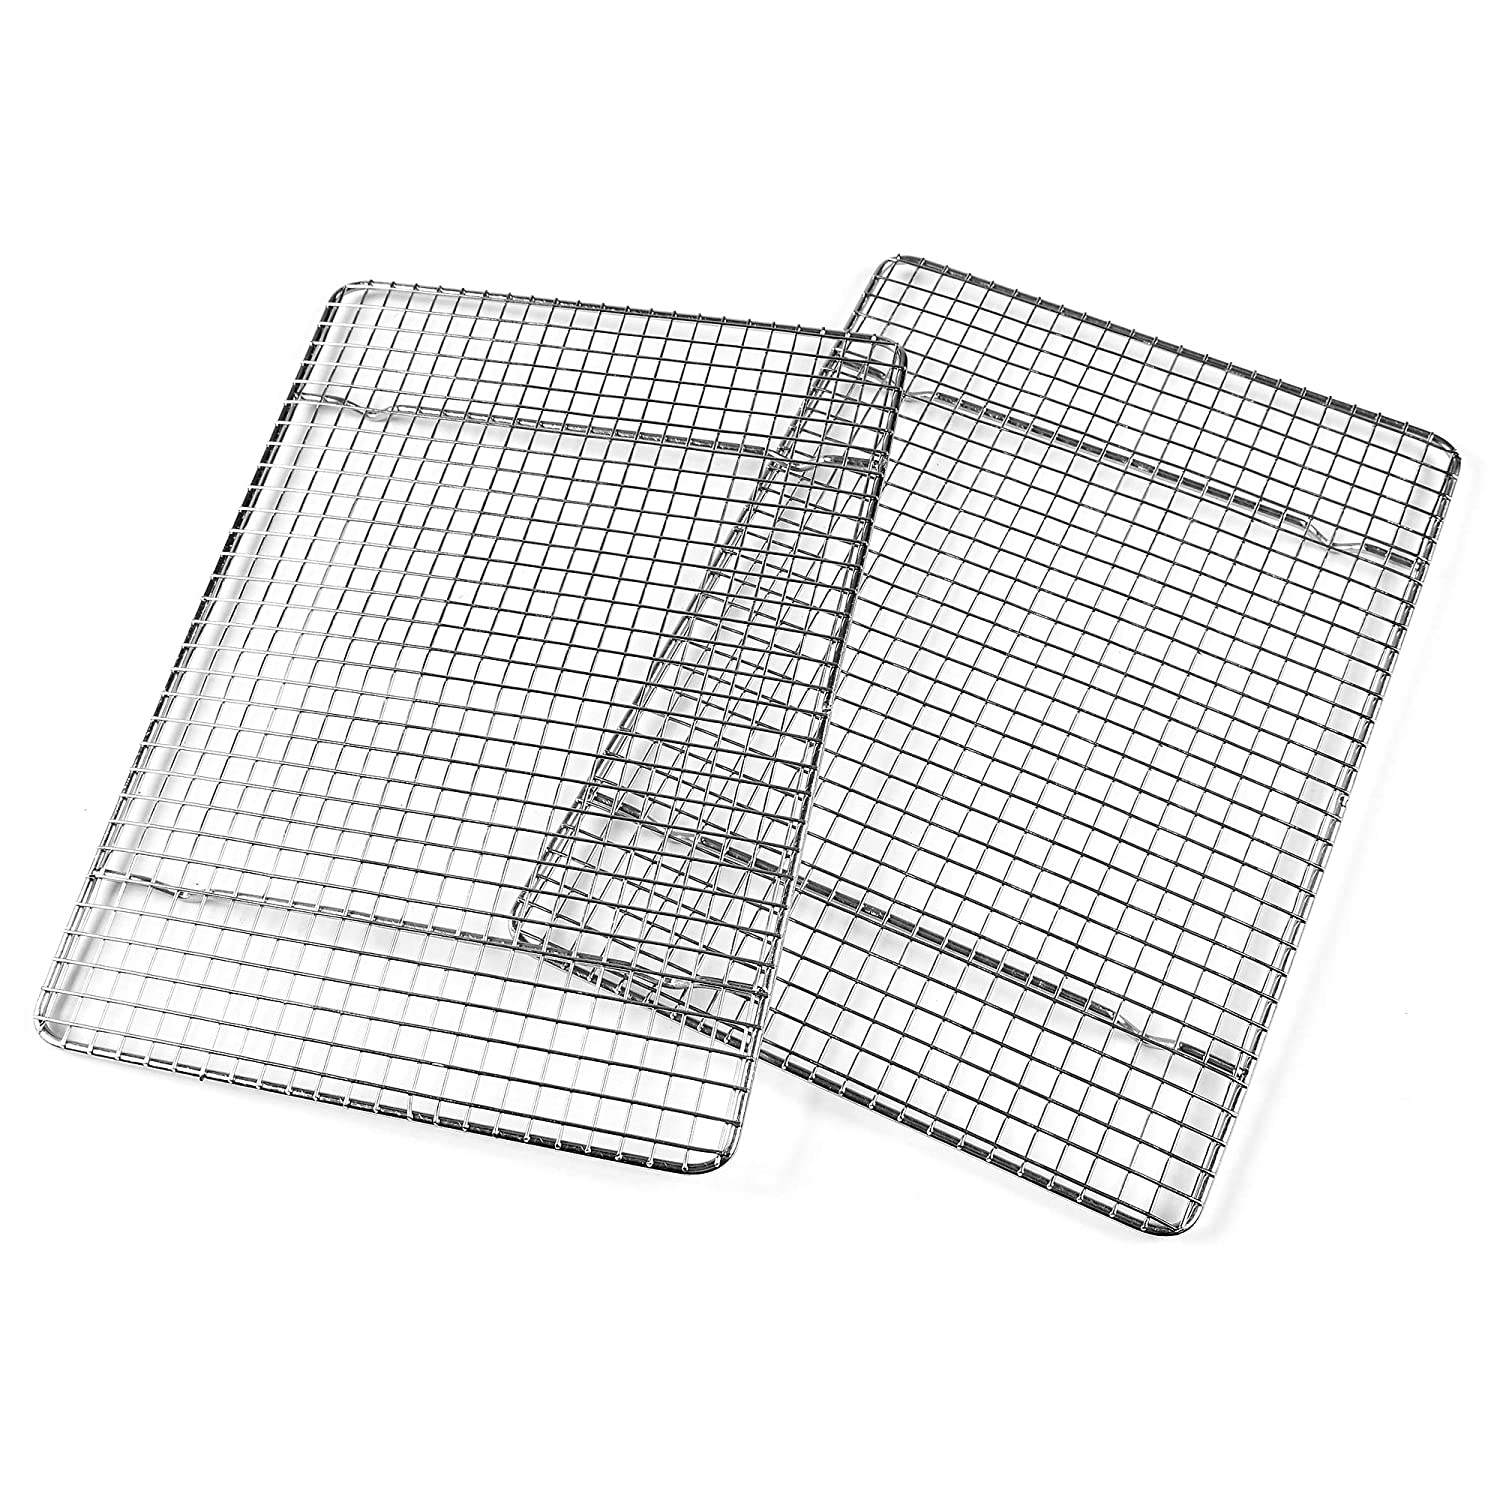 Professional Cross Wire Cooling Rack Half Sheet Pan Grate - 16-1/2 inches x 12 inches Drip Screen 2 Pack